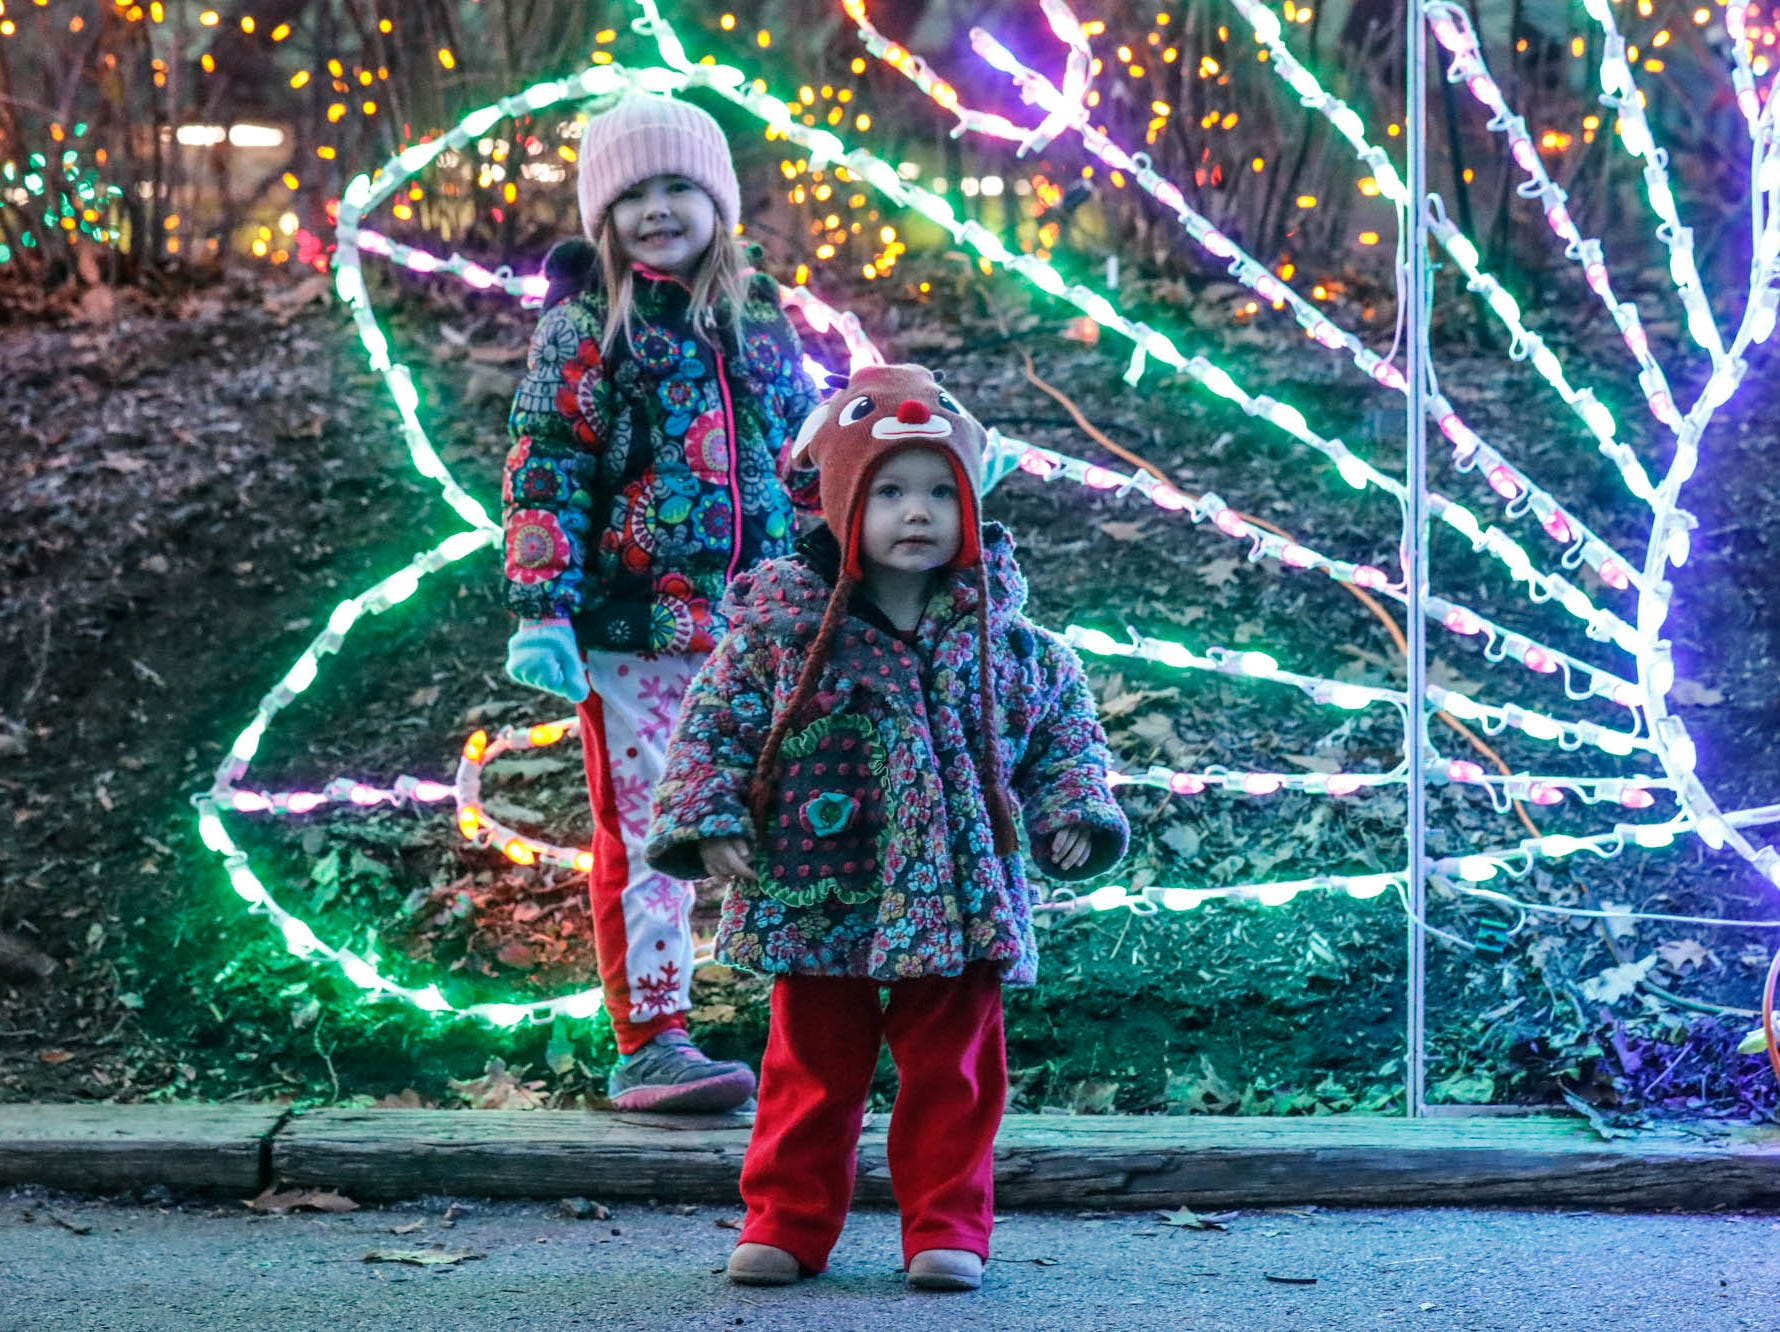 Avaline, left, and Annmarie Dewsbury pose for photos by a lighted peacock during Christmas at the Indianapolis Zoo on Wednesday, Dec. 19, 2018.